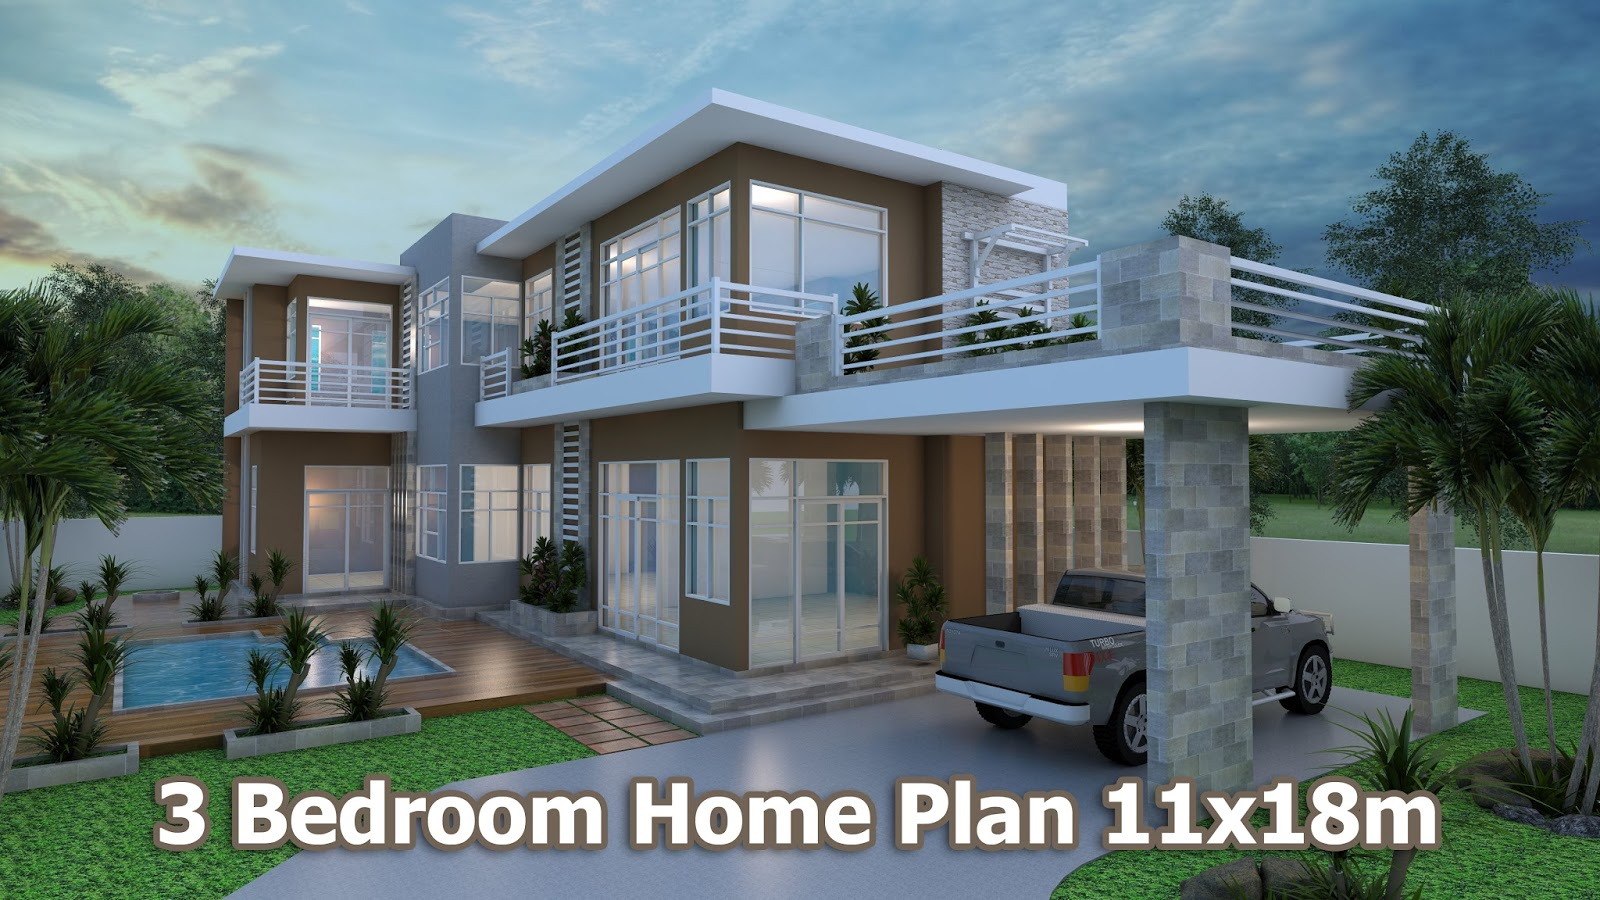 Home design 3d sketchup villa design plan 11x18m sam for Villa design